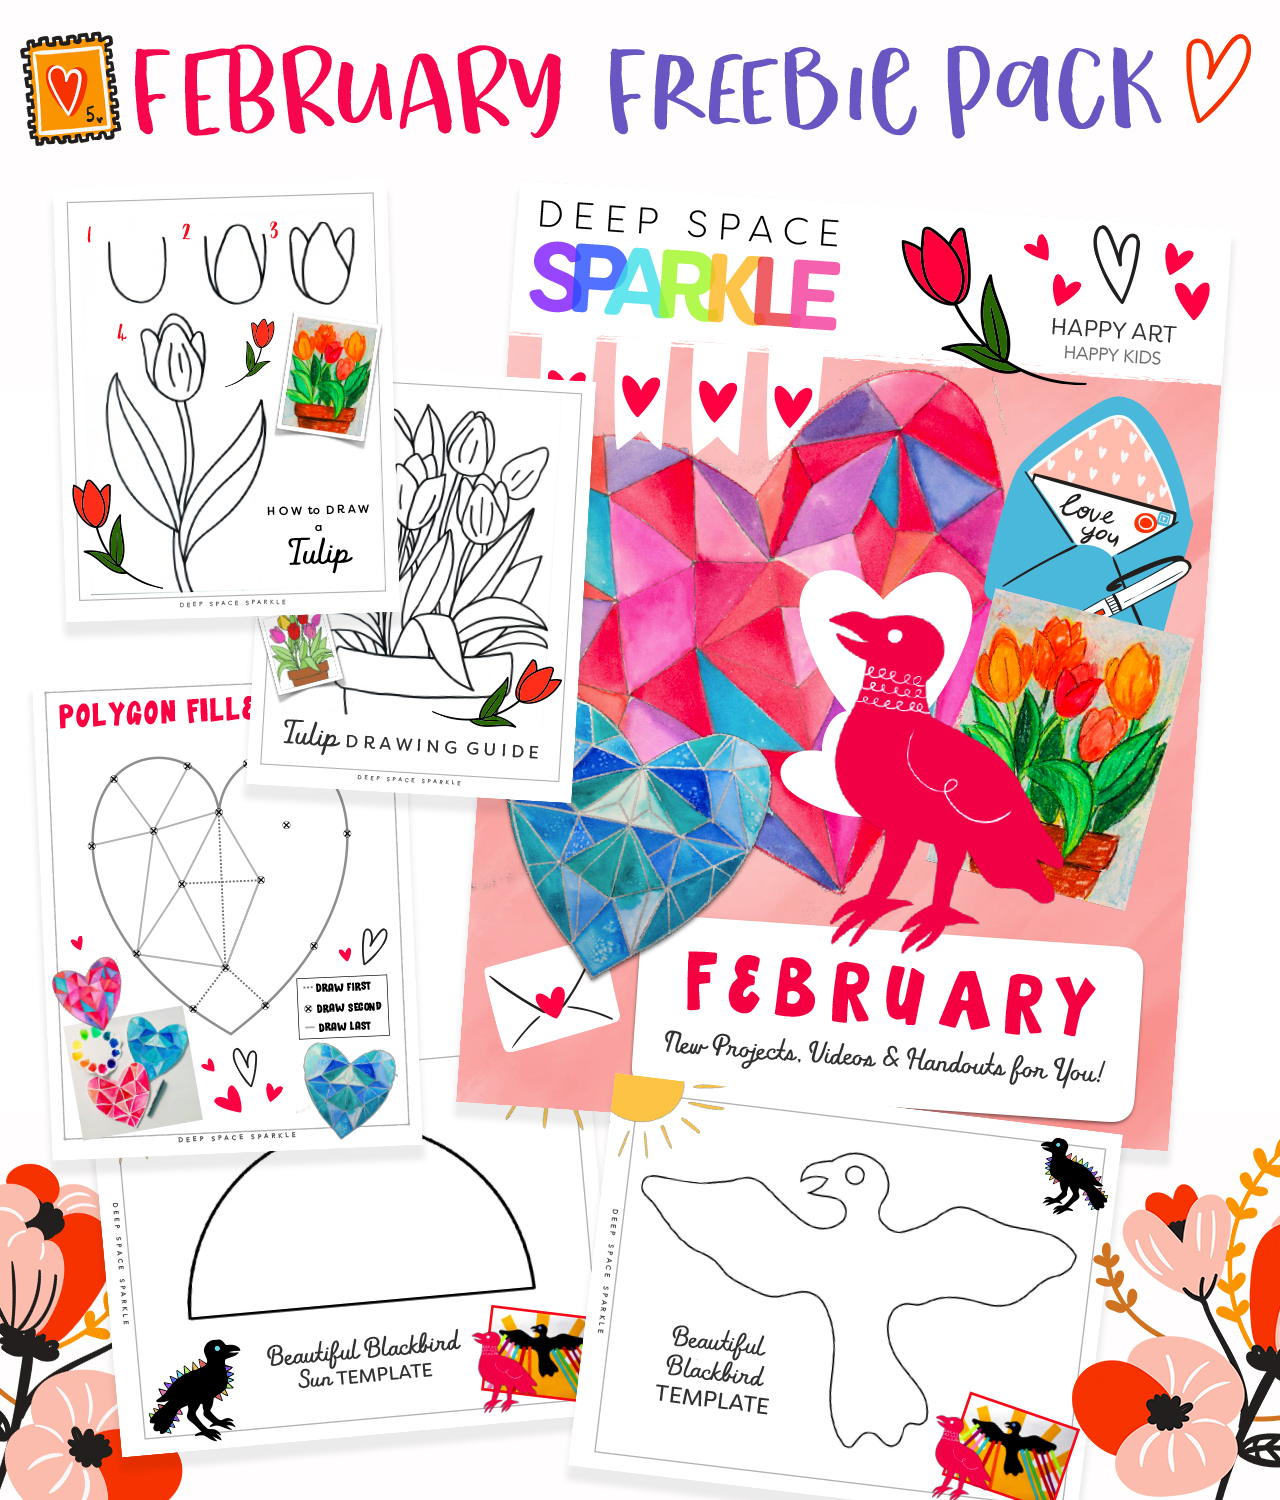 February Freebie pack of art lessons for art teachers for the holidays valentines